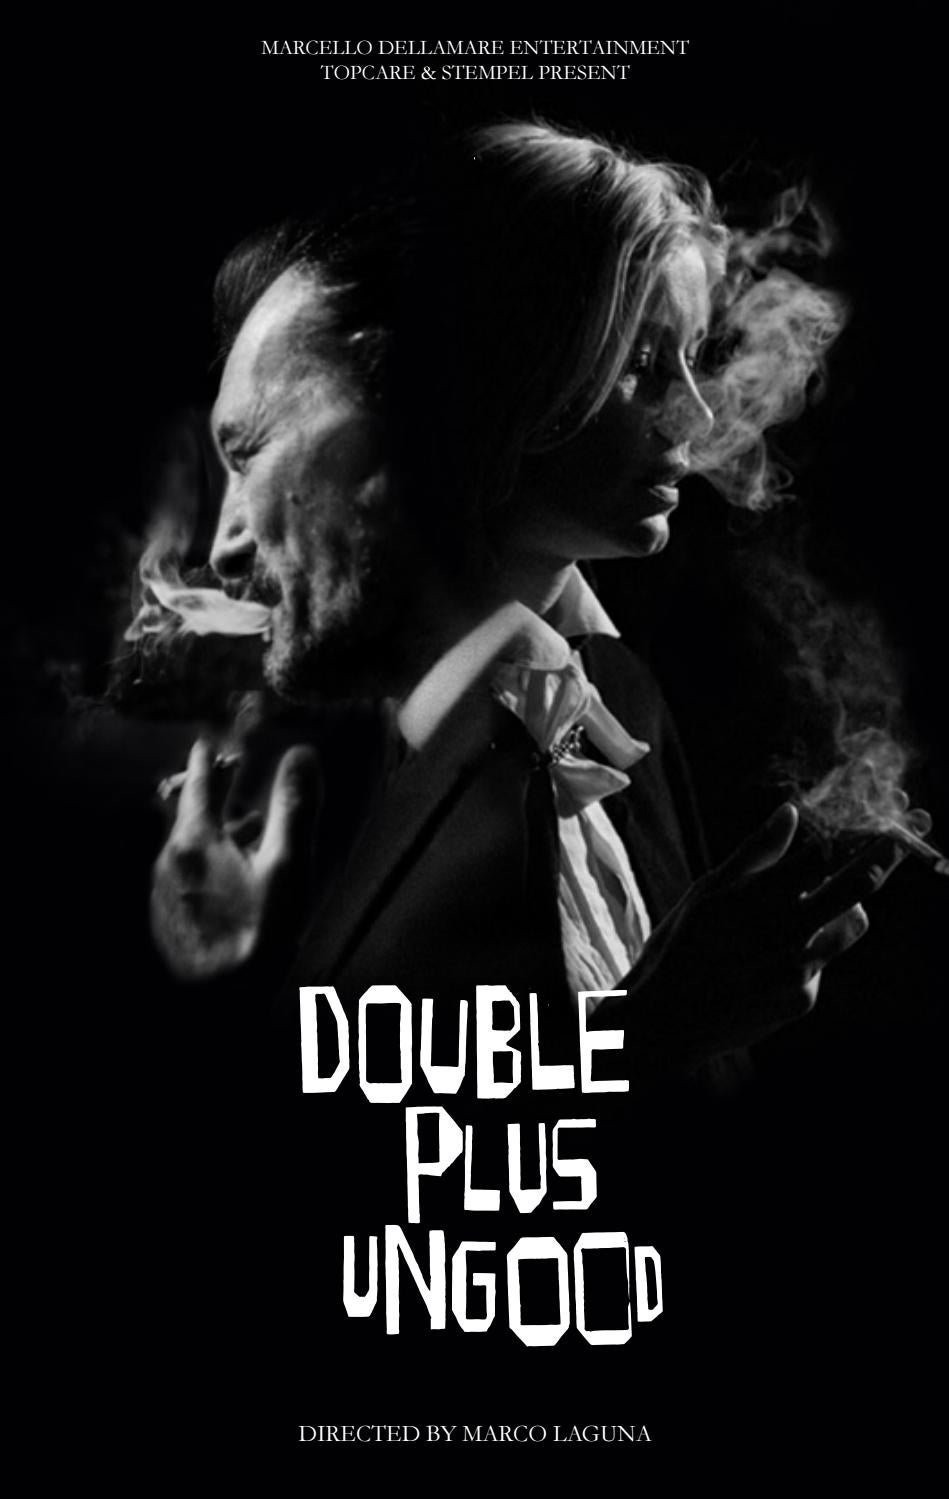 Doubleplusungood - directed by Marco Laguna by Doubleplusungood - issuu